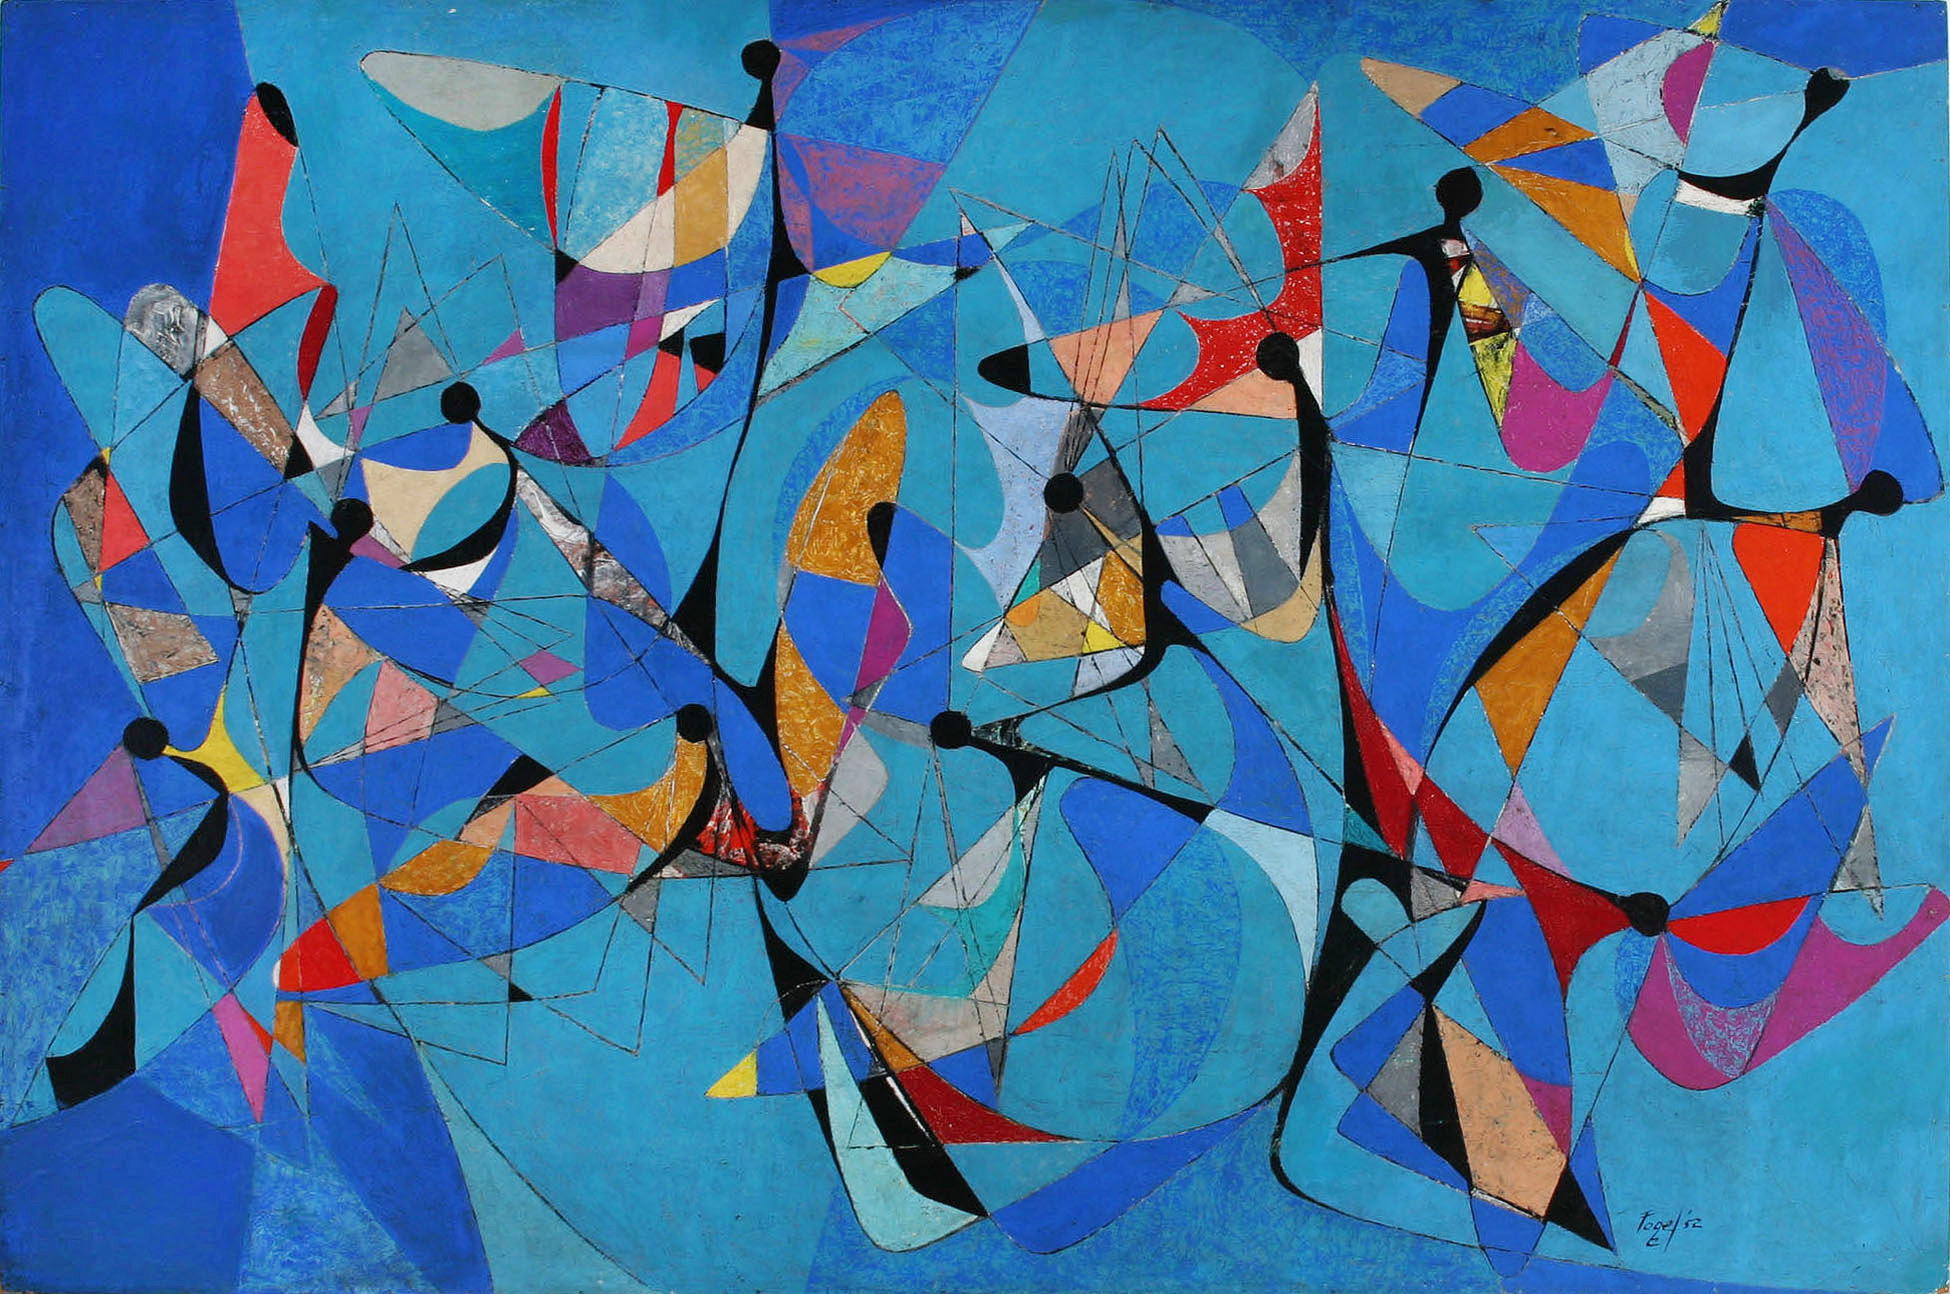 Icarian Flight, 1952, oil on Masonite